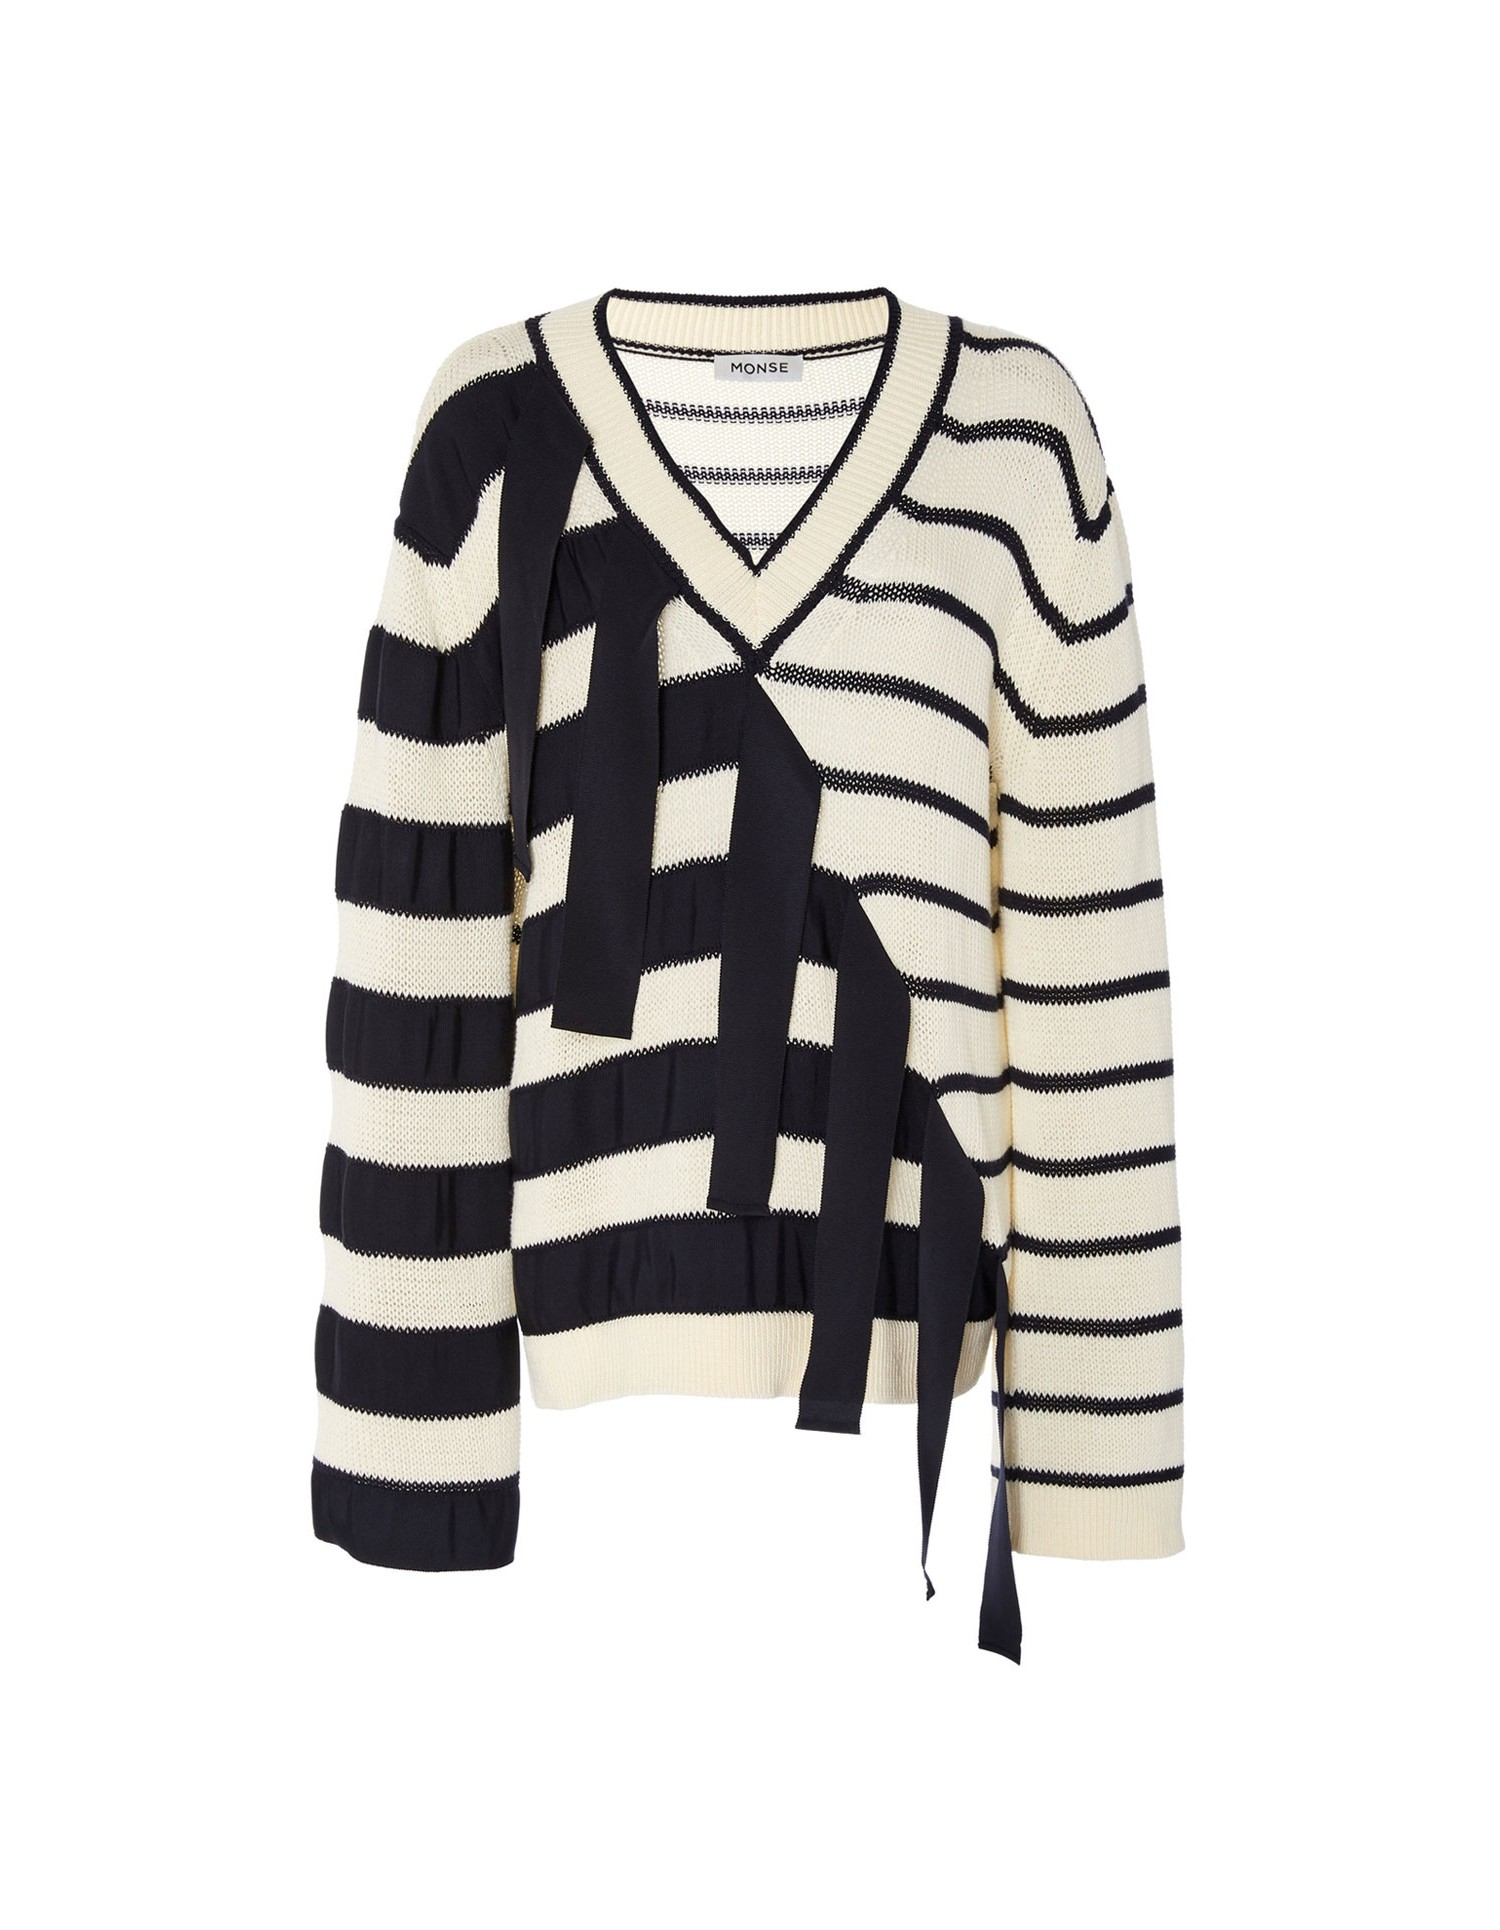 Monse Women's V-Neck Falling Stripes Pullover Front